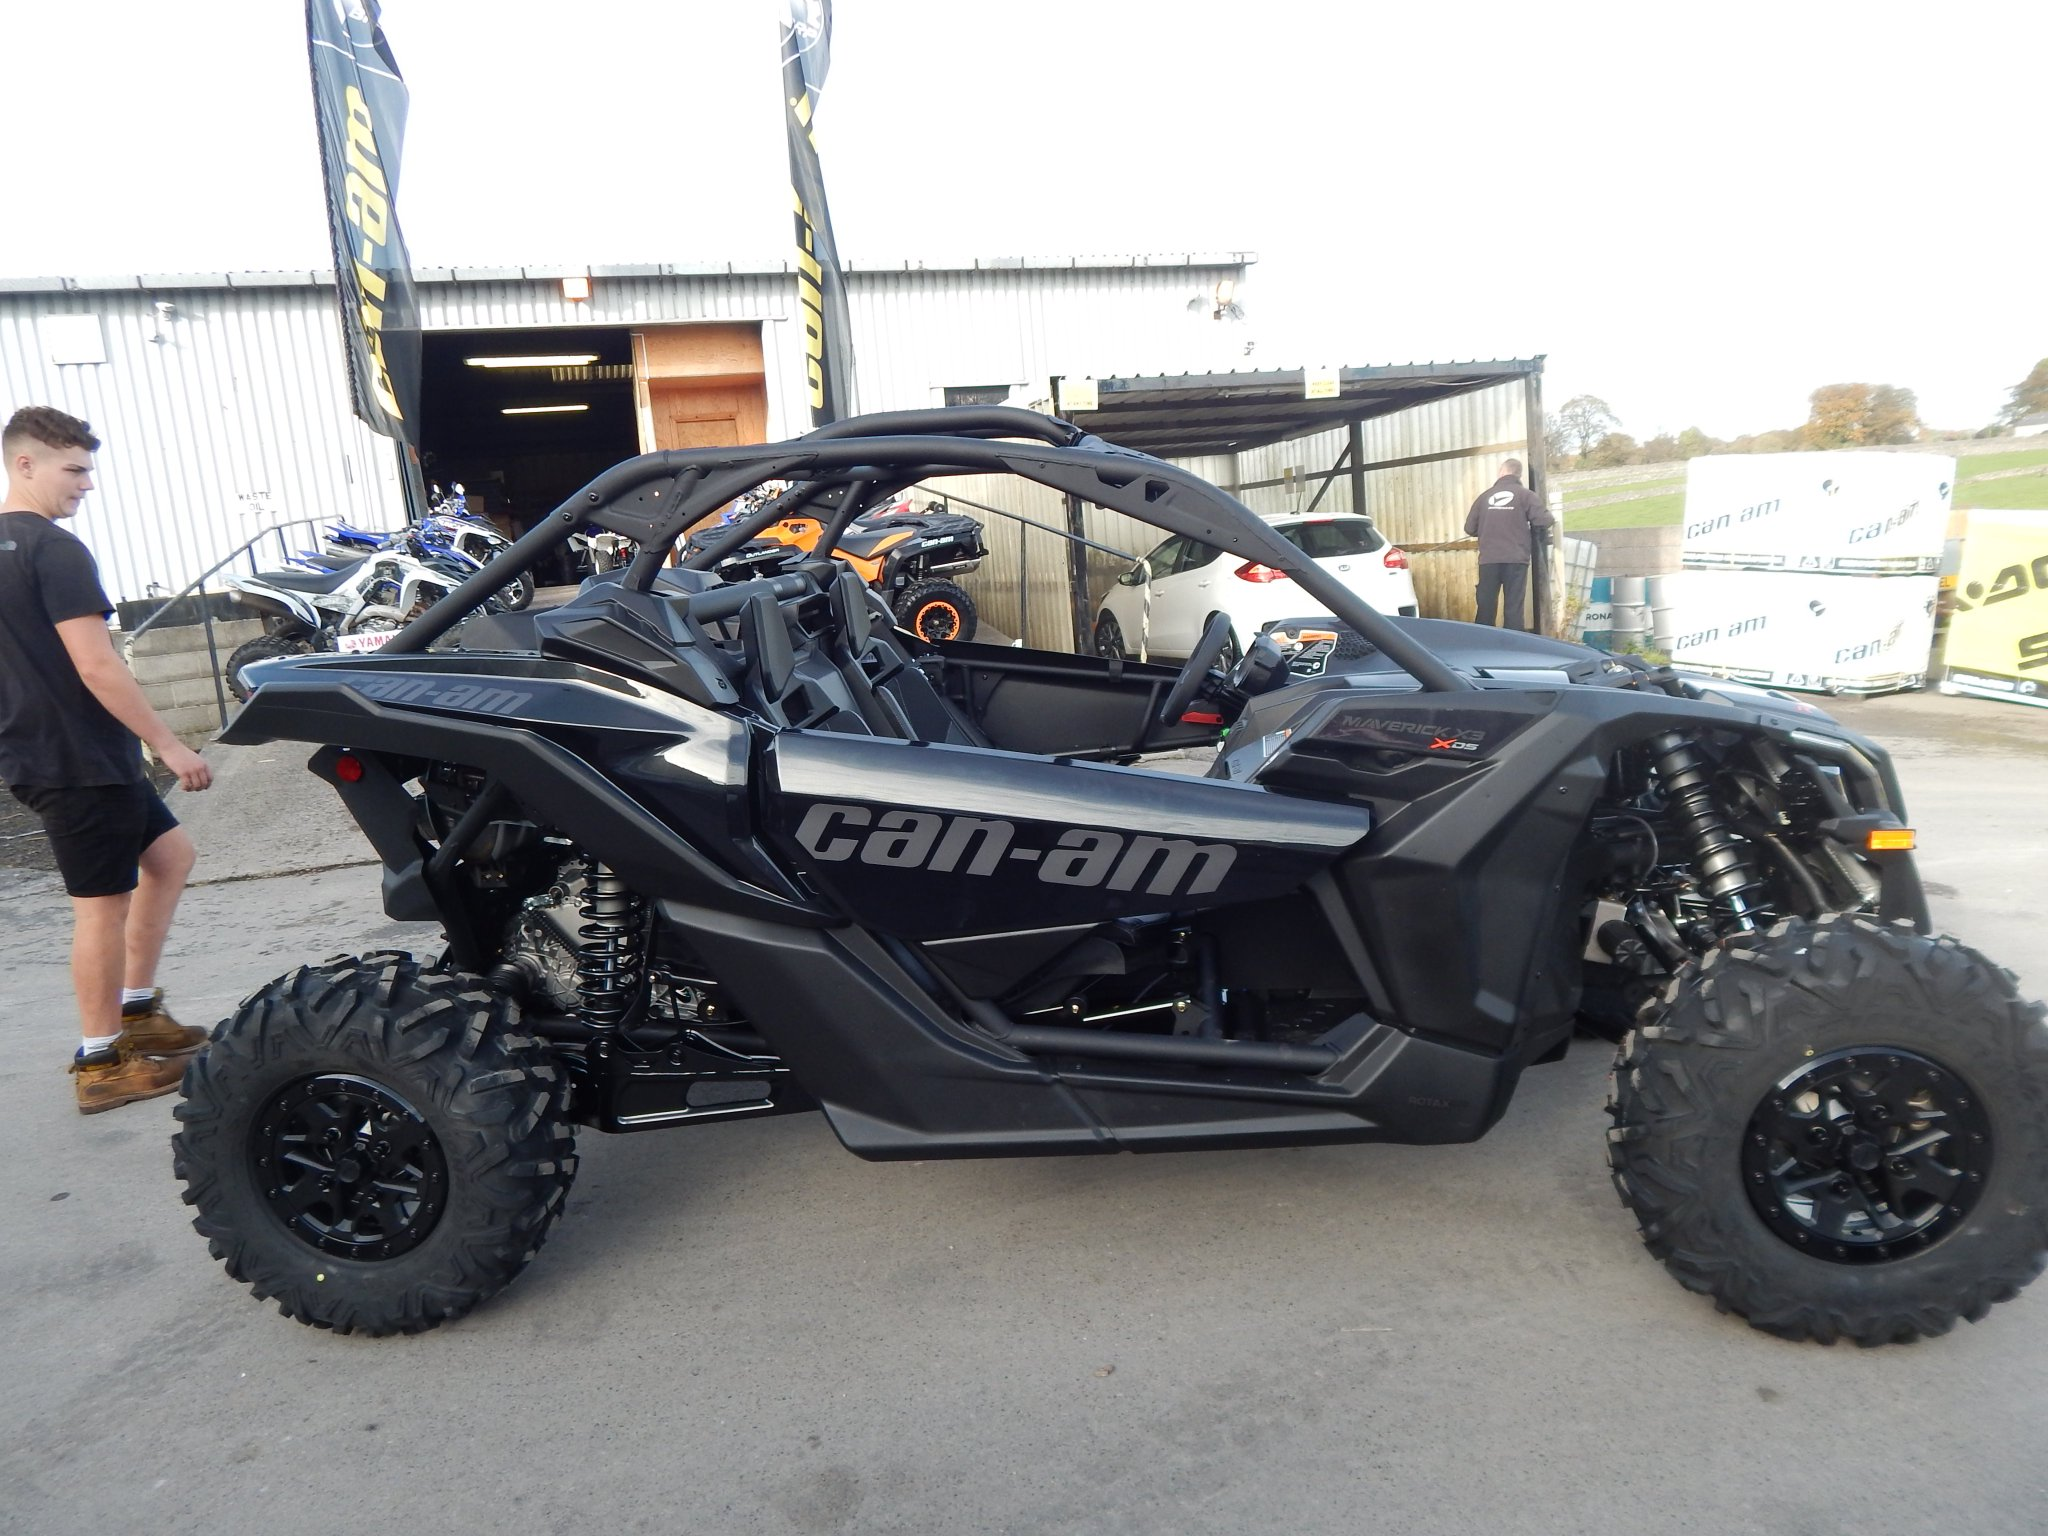 buxton quads on twitter the new can am maverick x3 2017 model arrived today and it 39 s. Black Bedroom Furniture Sets. Home Design Ideas